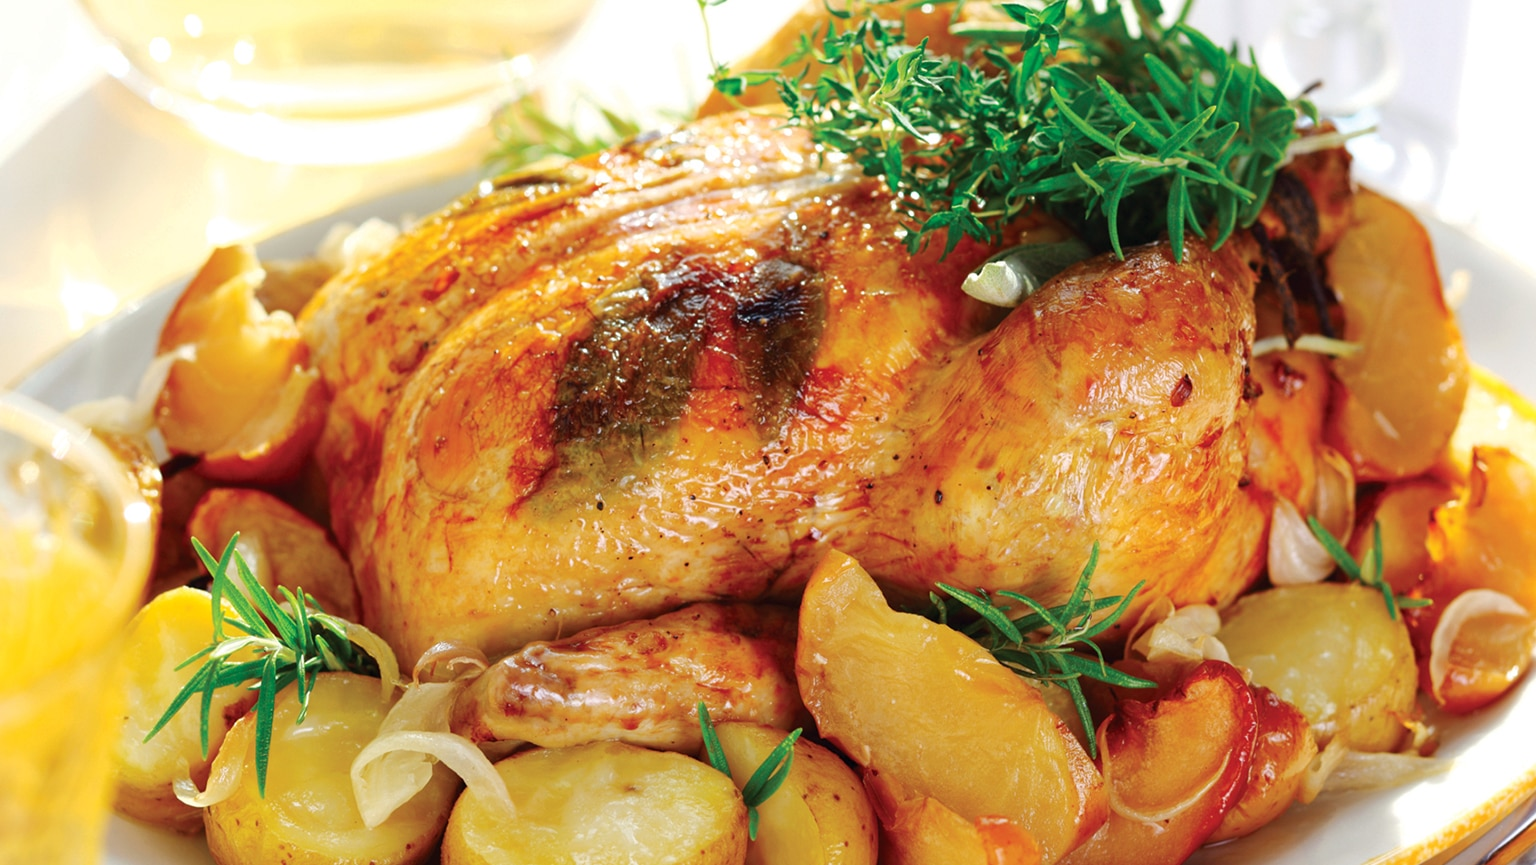 Roasting—Dry-Heat Cooking without Fat